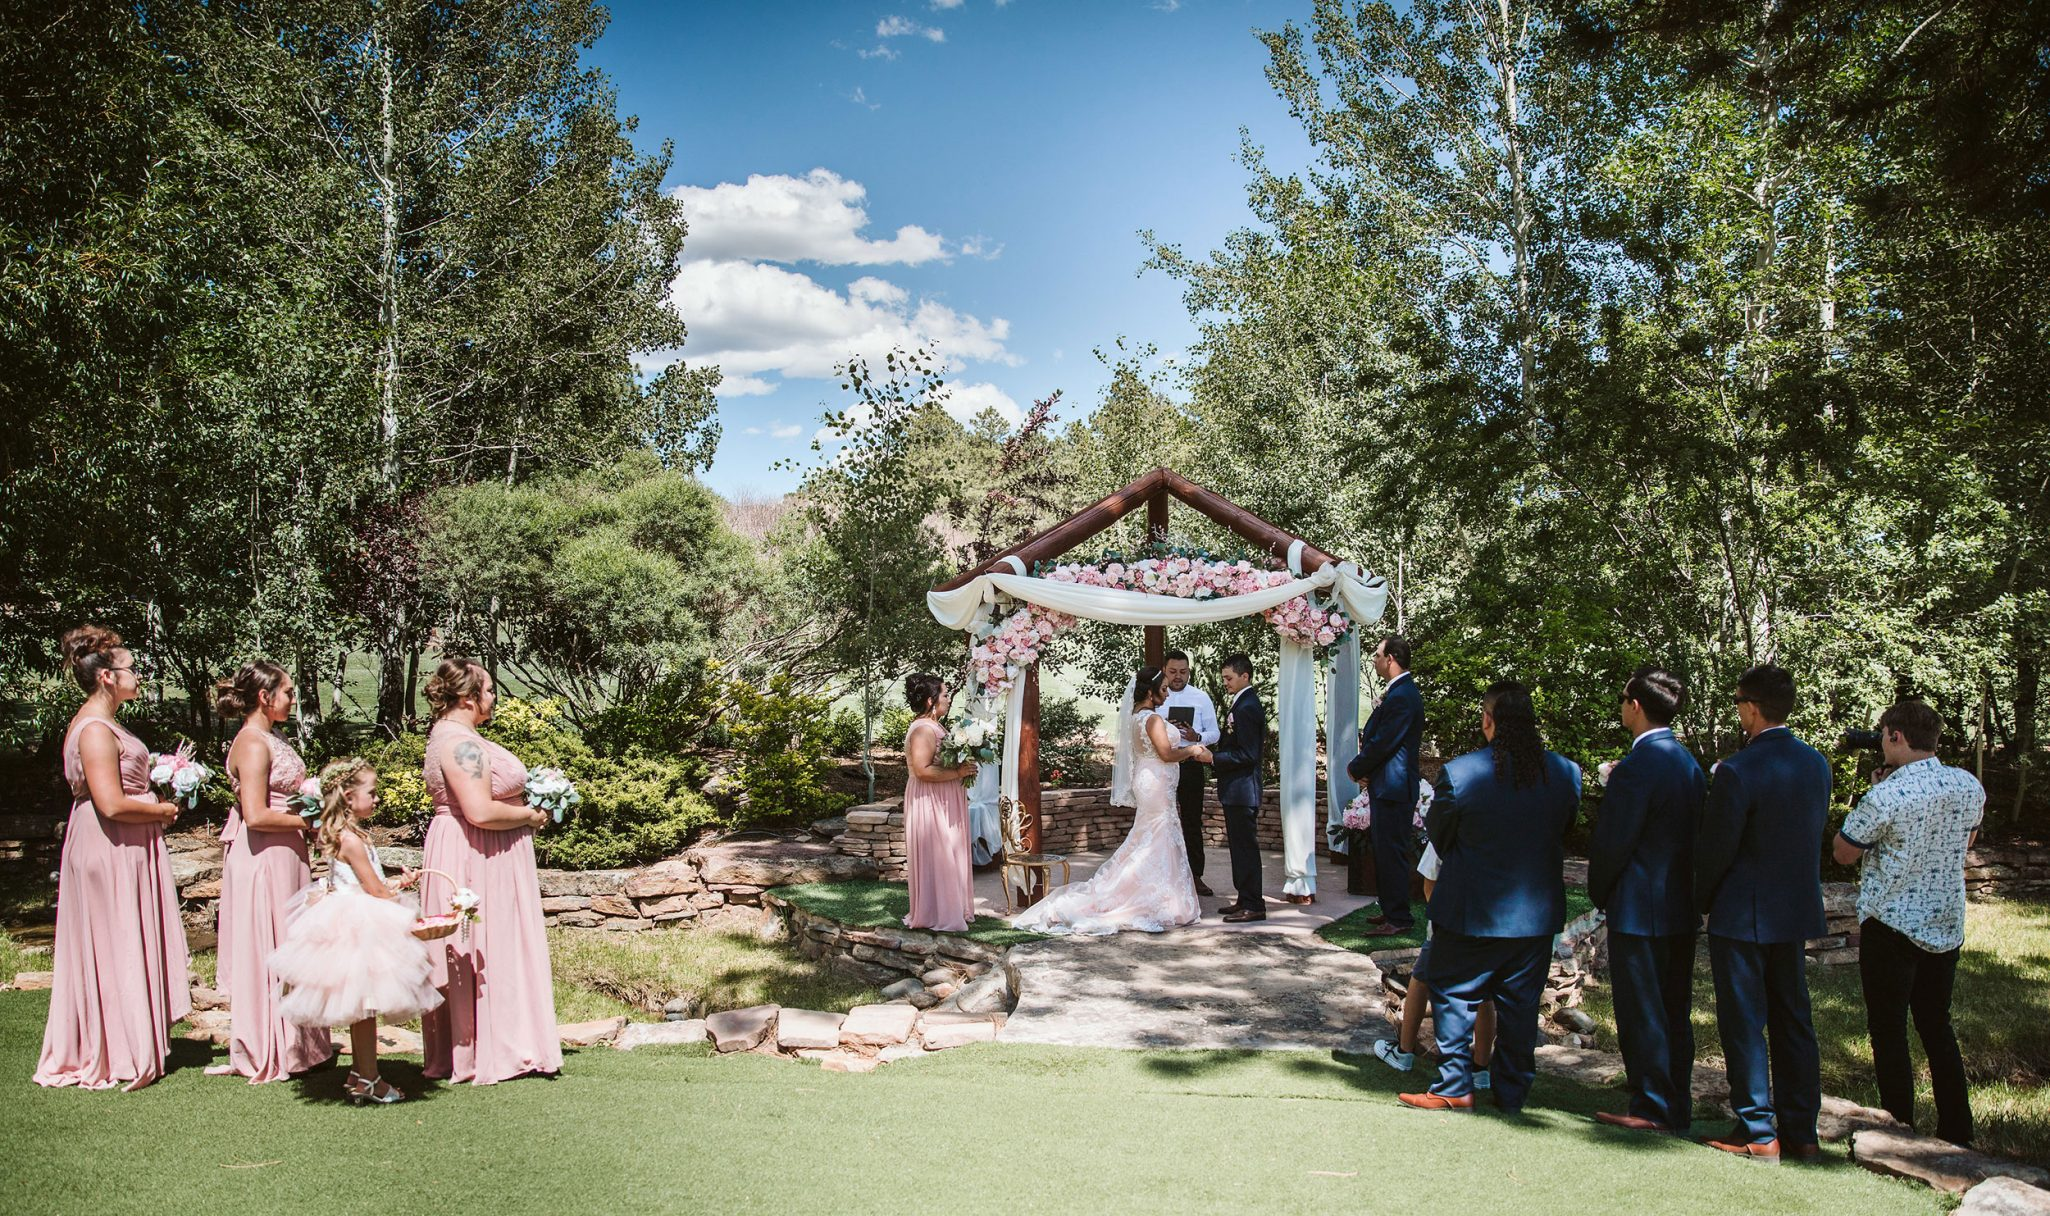 Wedding ceremony at Echo Basin Ranch, Durango, Colorado